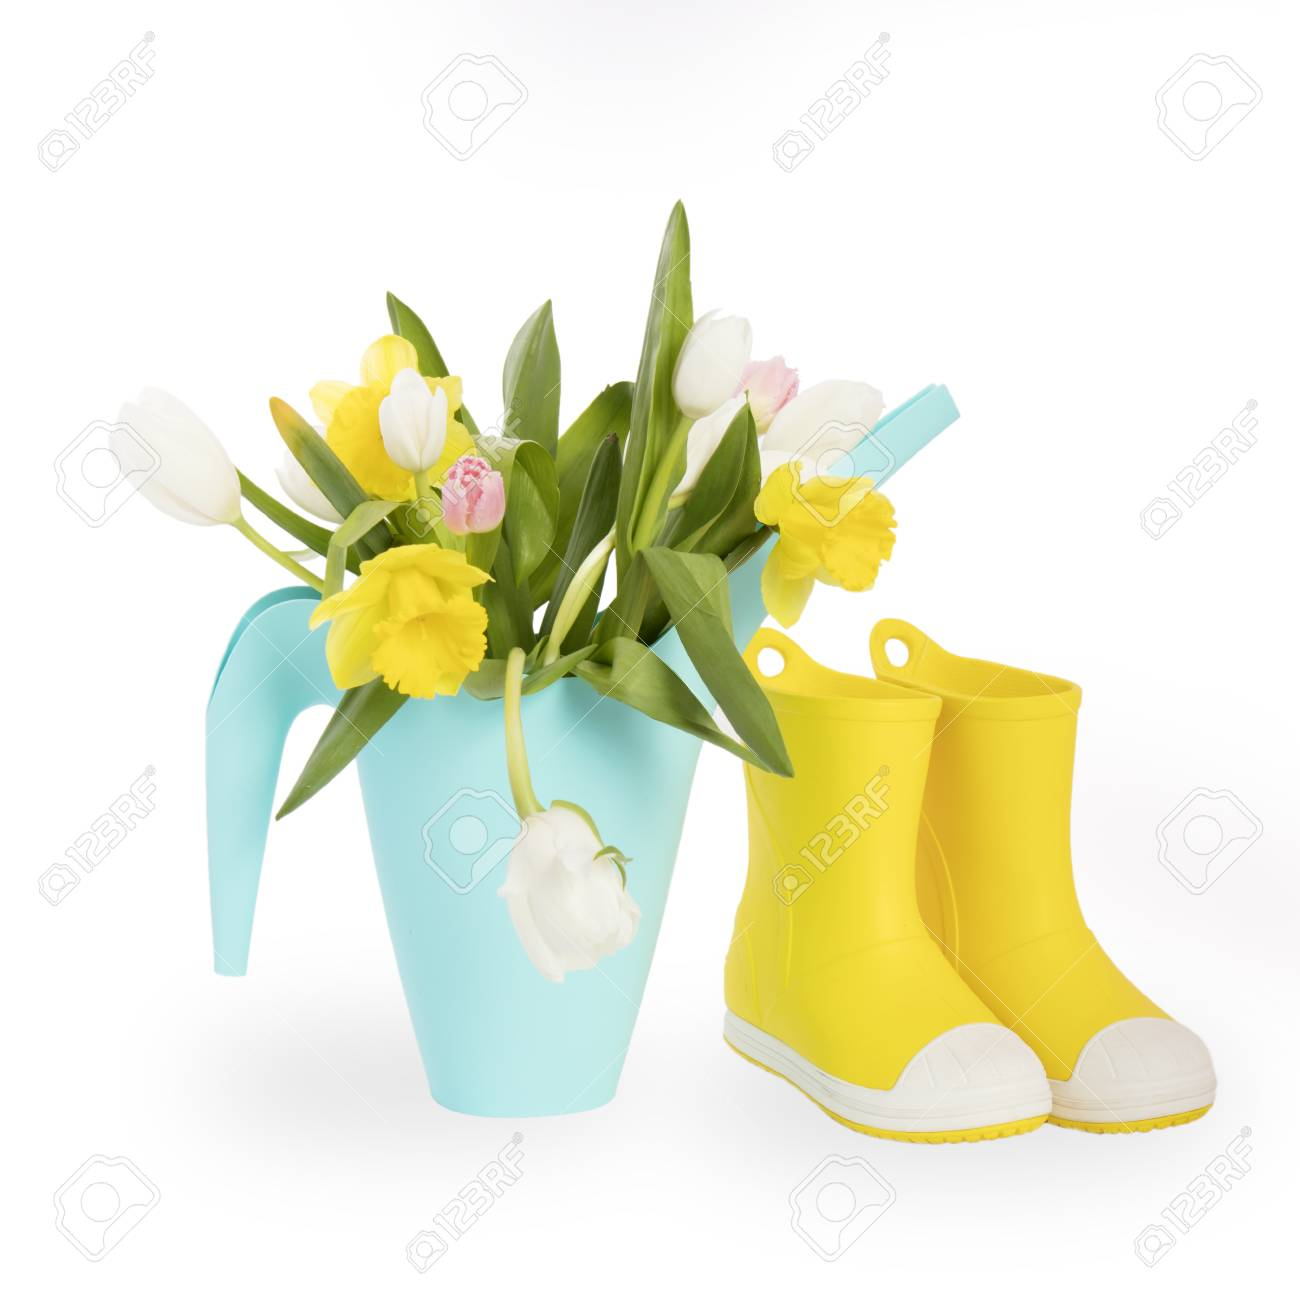 Yellow rubber boots and blue watering can with a bouquet of flowers stock photo yellow rubber boots and blue watering can with a bouquet of flowers of yellow daffodils and white and pink tulips on the white background izmirmasajfo